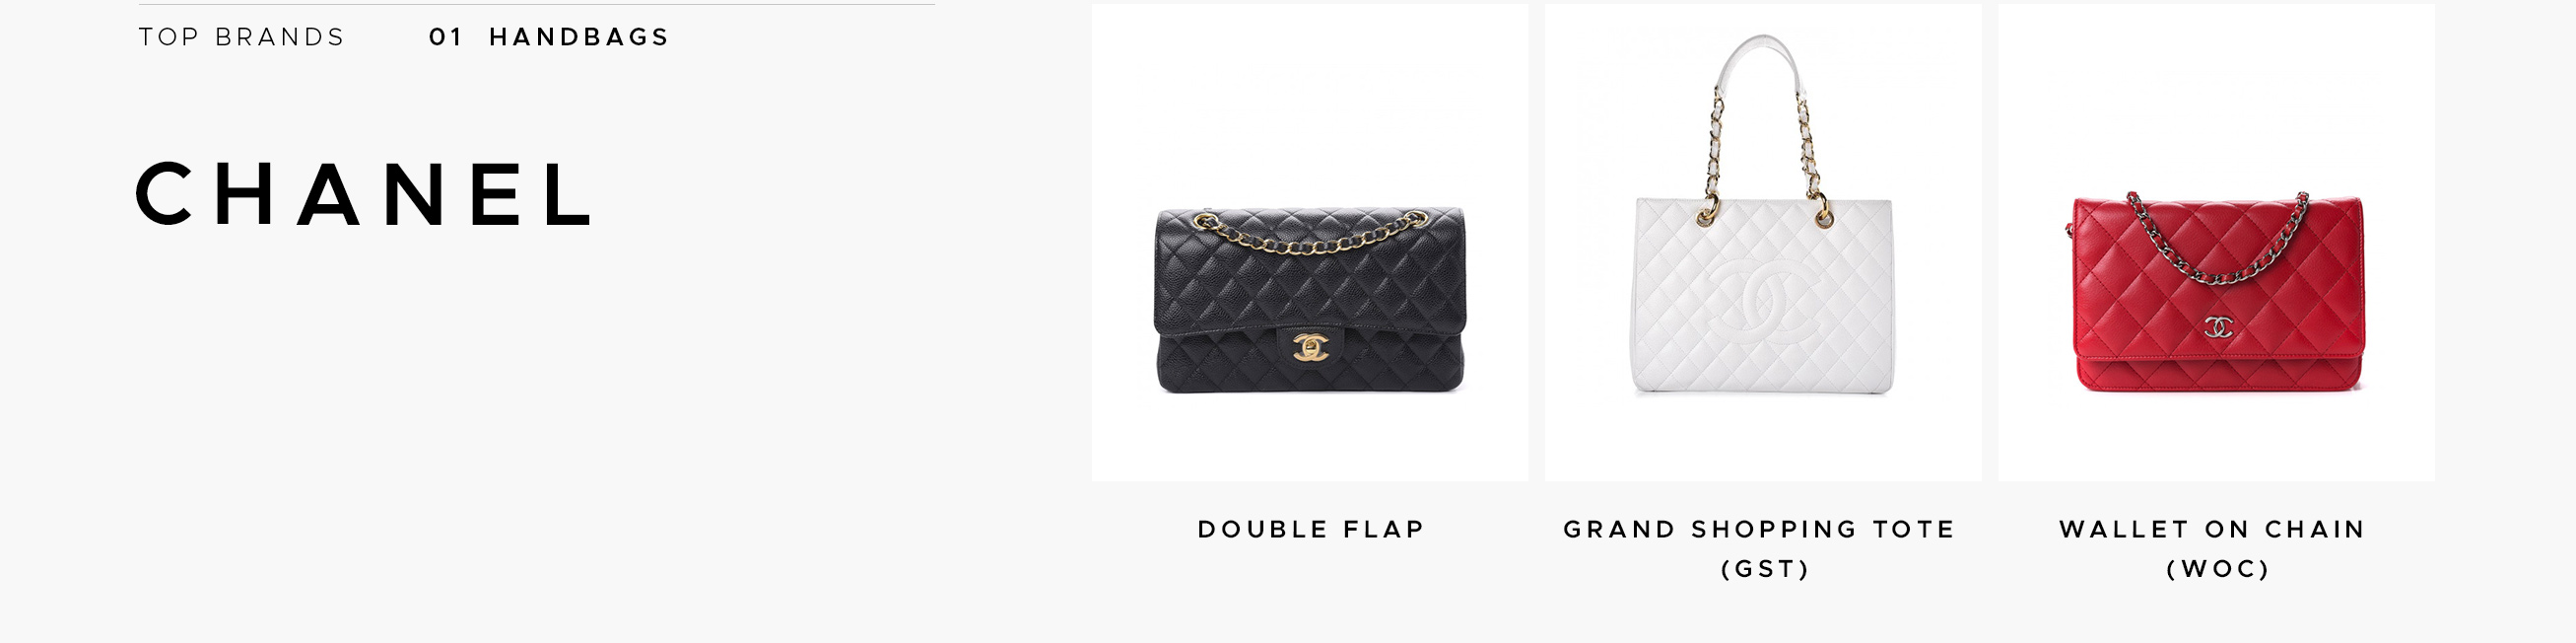 Top Chanel Handbags